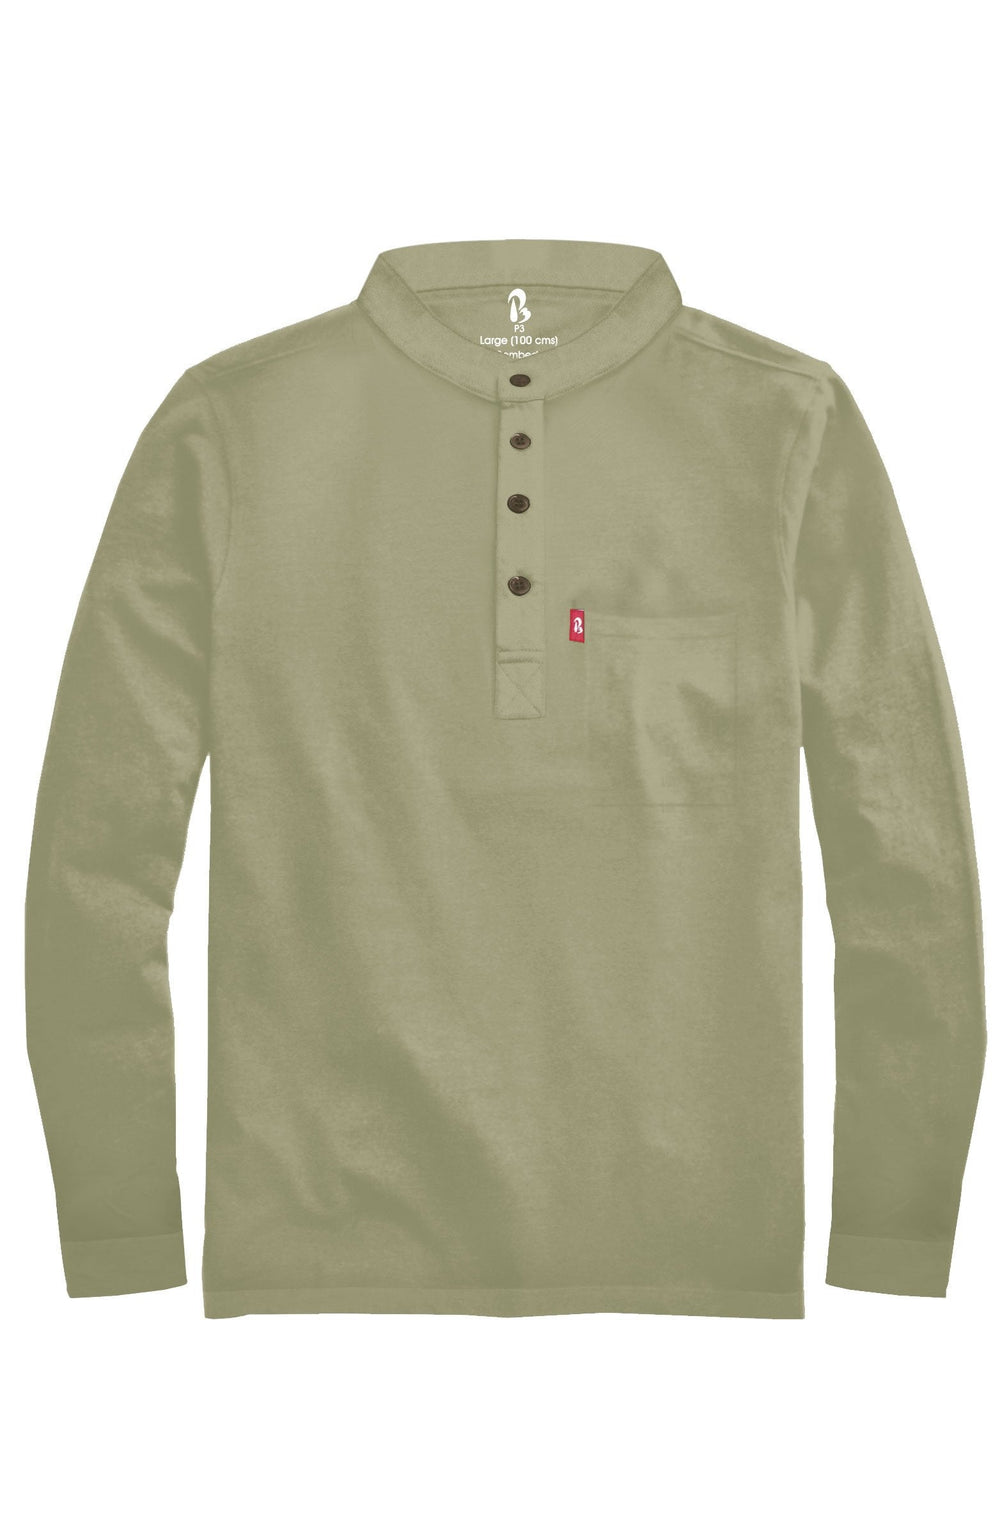 "Cuffed Mandarin Henley (MRP inclusive of all taxes) Mandarins P3 Small/ 90 cms/ Ideal for shirt size 38"" Glades"